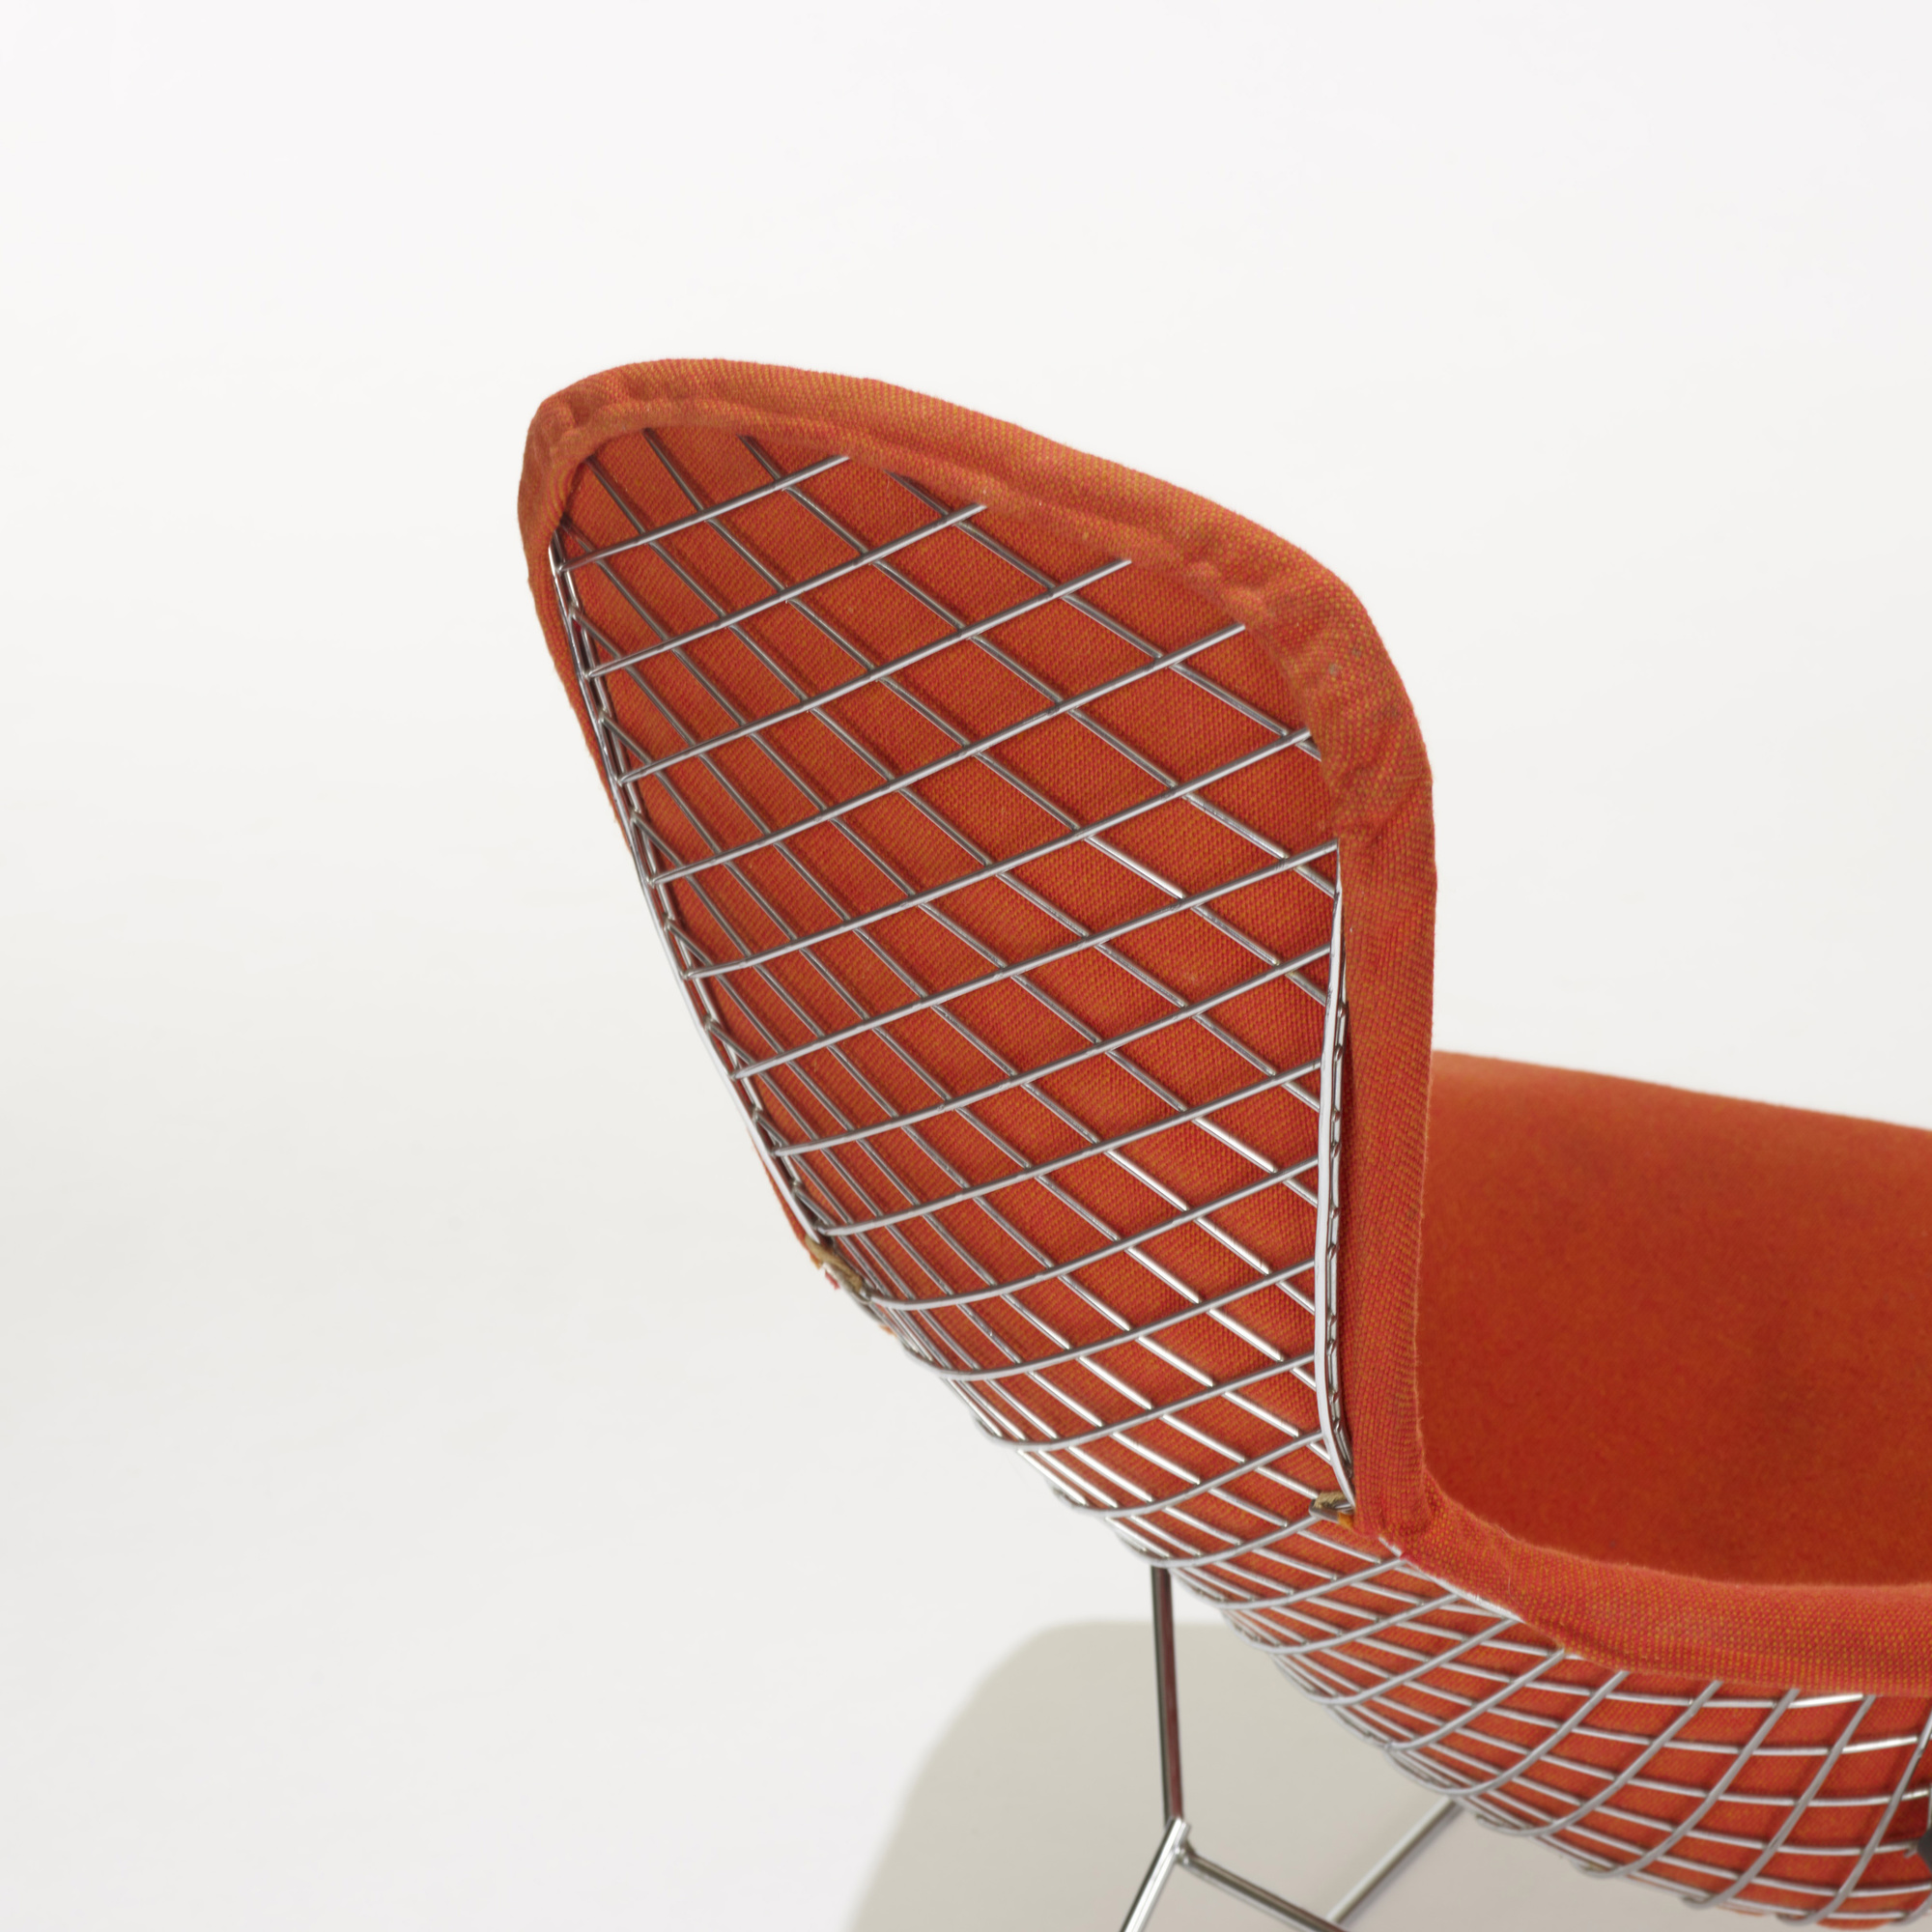 ... 109 Harry Bertoia / Bird chair and ottoman (4 of 4) & 109: HARRY BERTOIA Bird chair and ottoman u003c American Design 21 ...